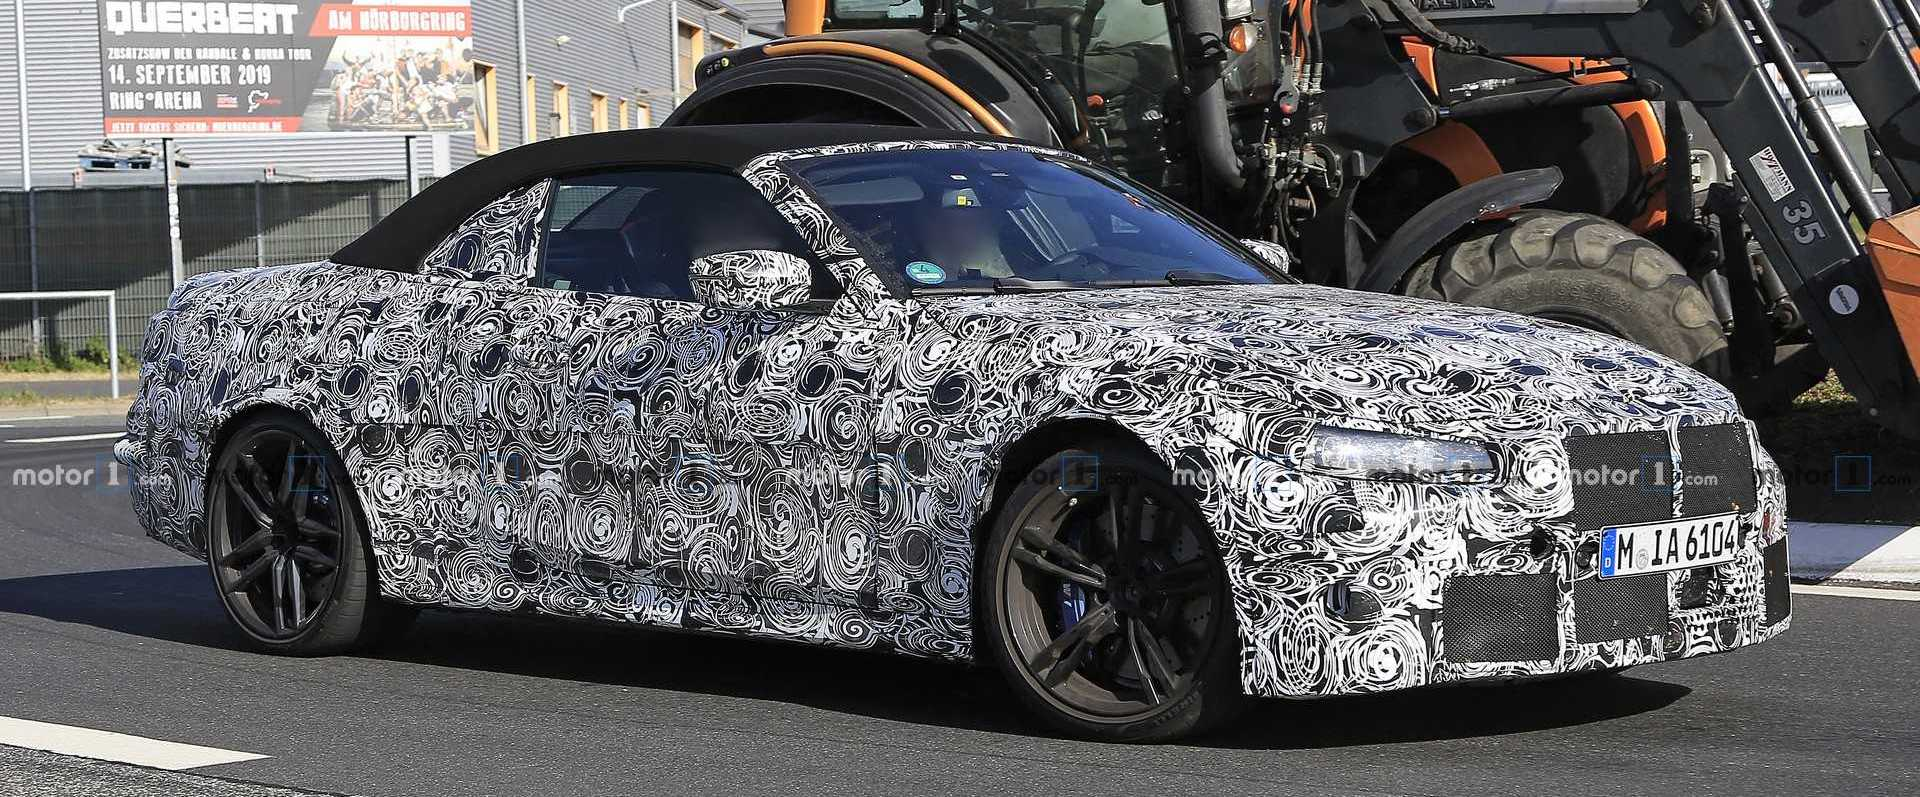 BMW M4 Cabriolet Spied For First Time